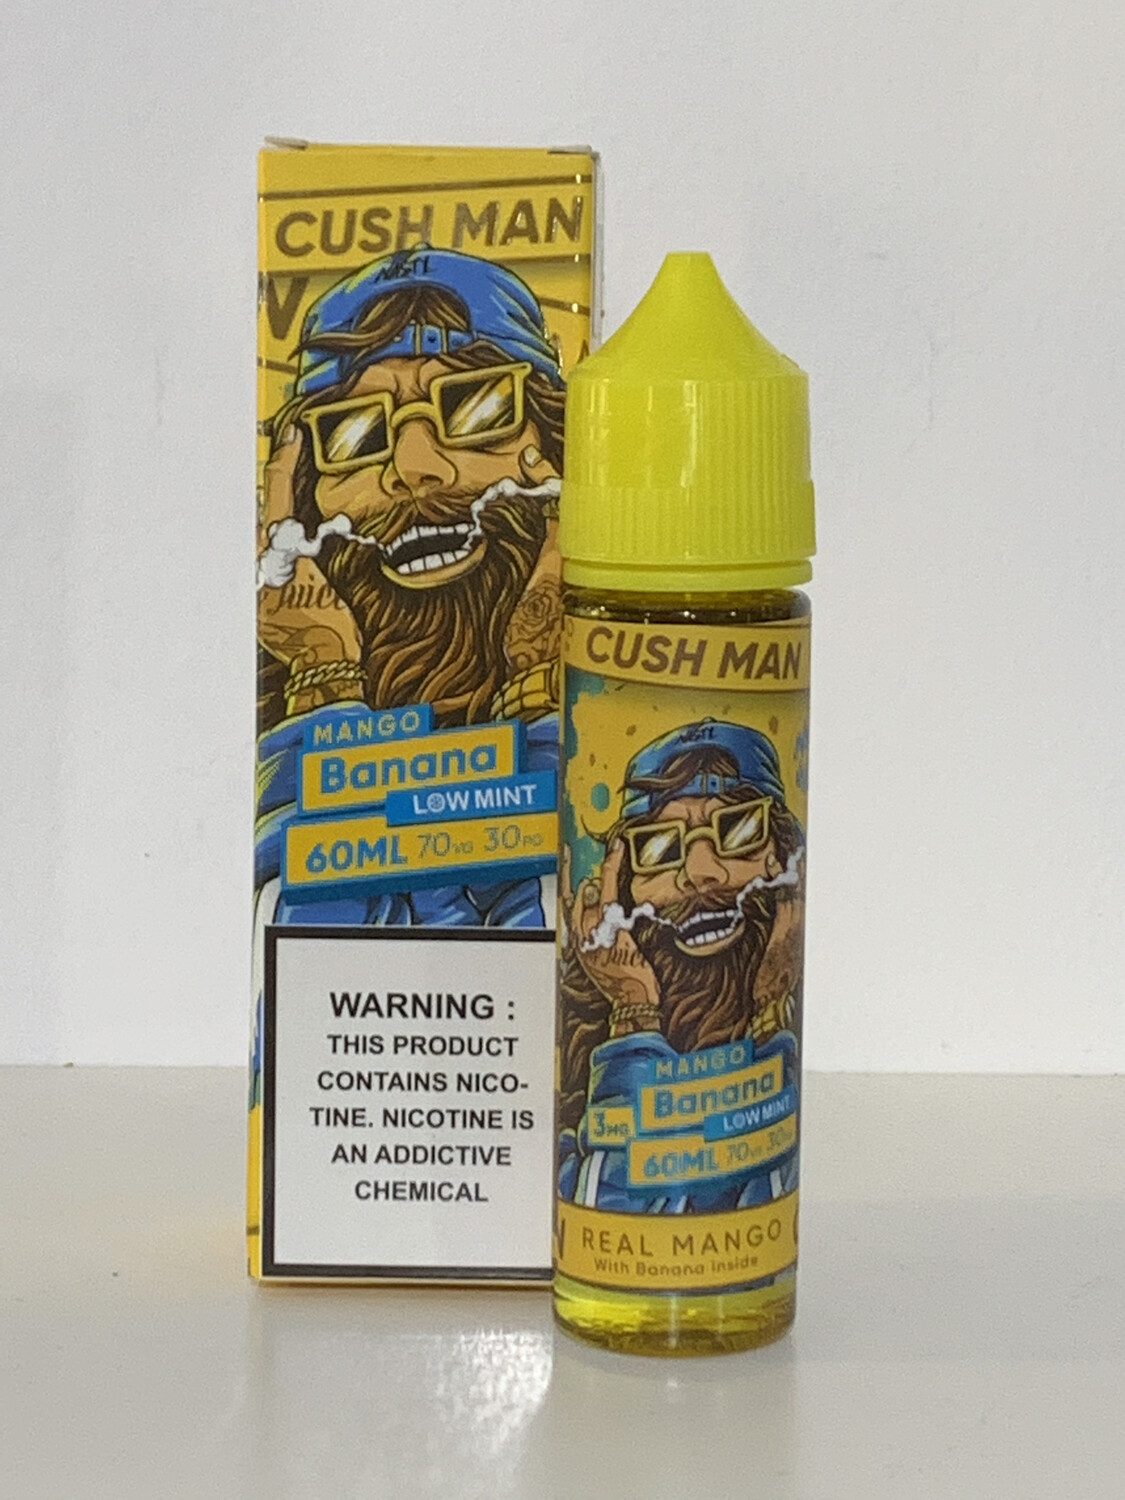 Cush Man Mango Banana Low Mint